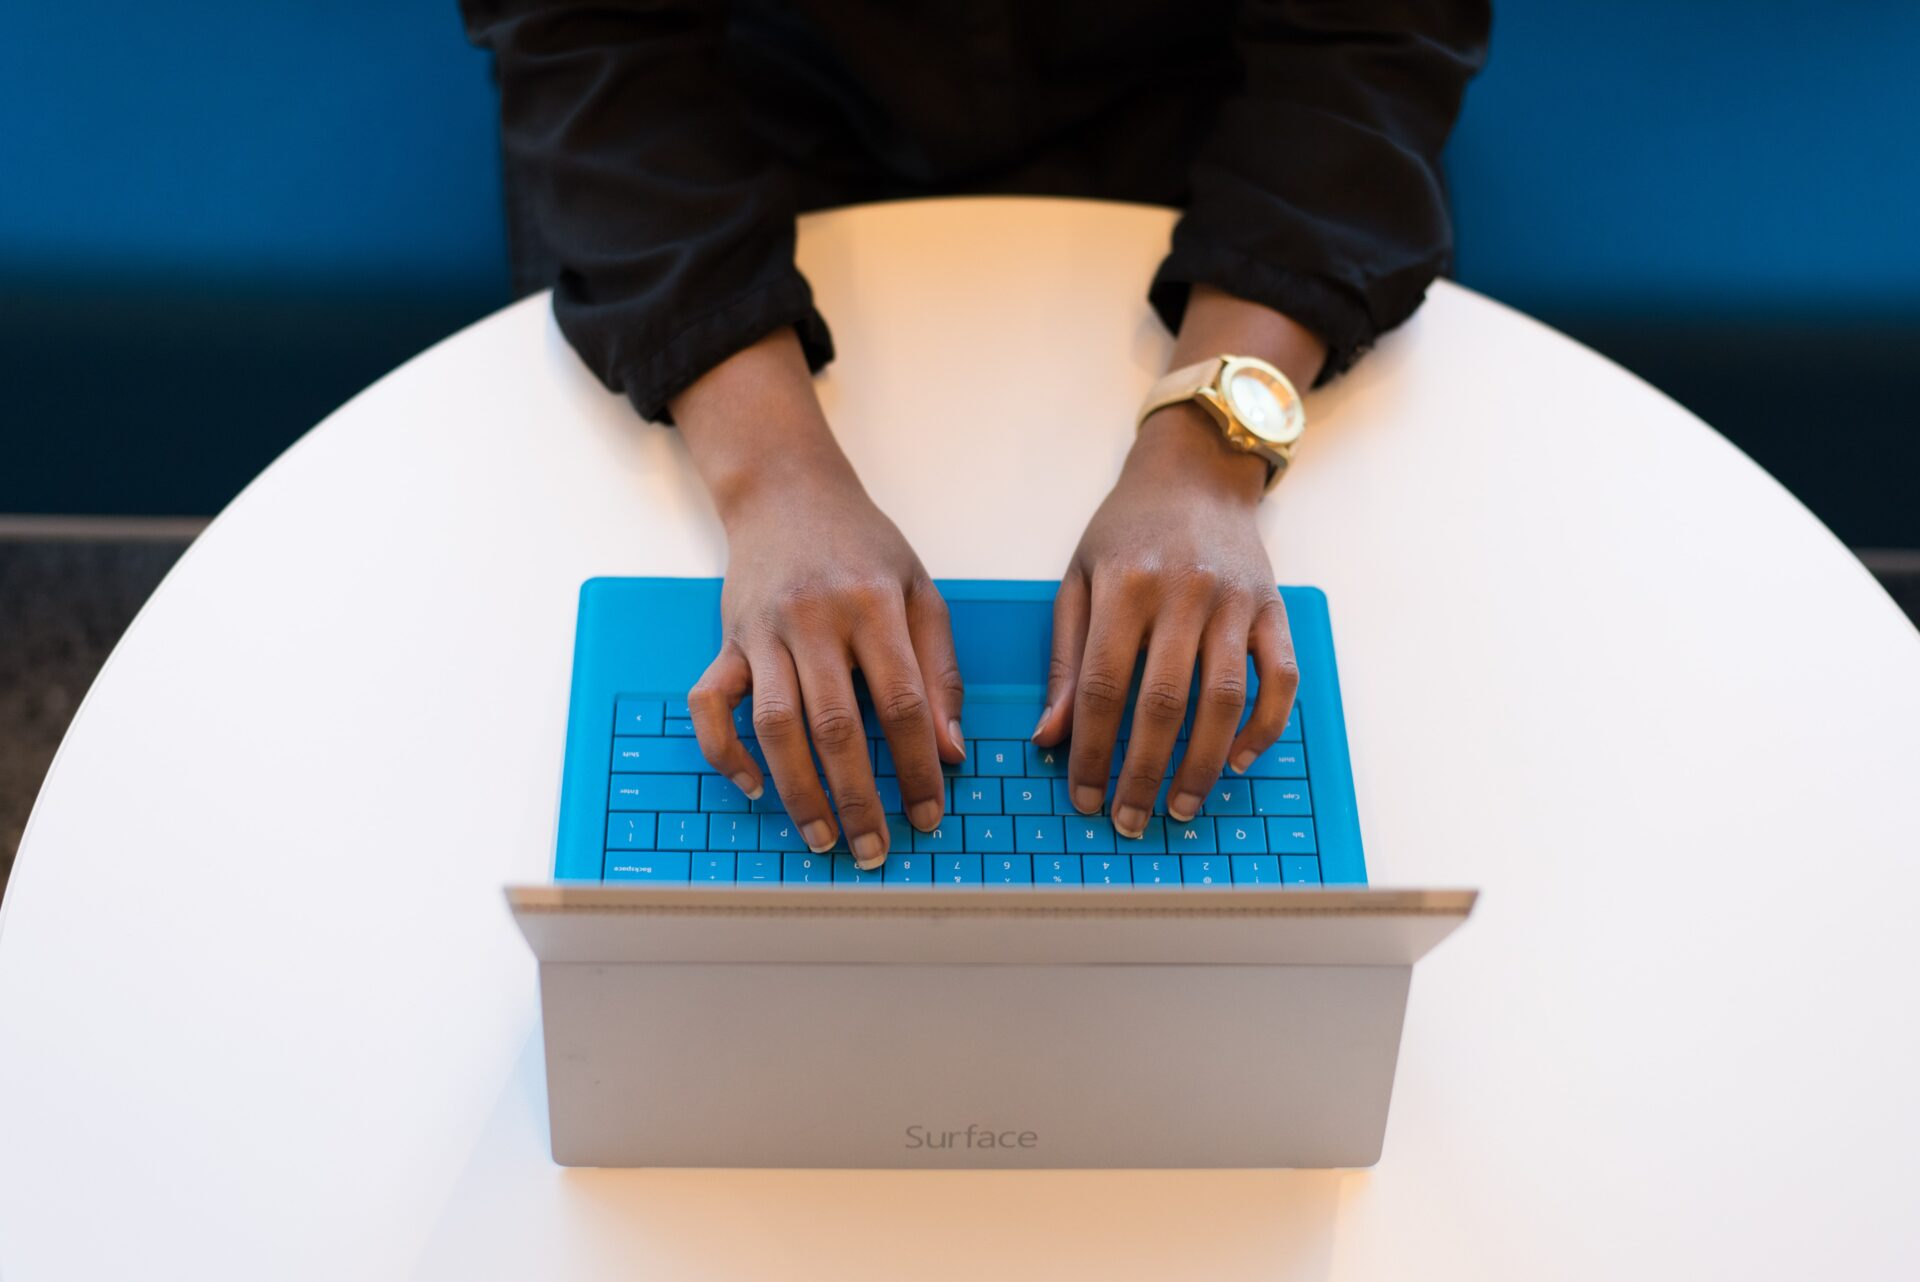 a person using a property management software for landlords on a blue laptop